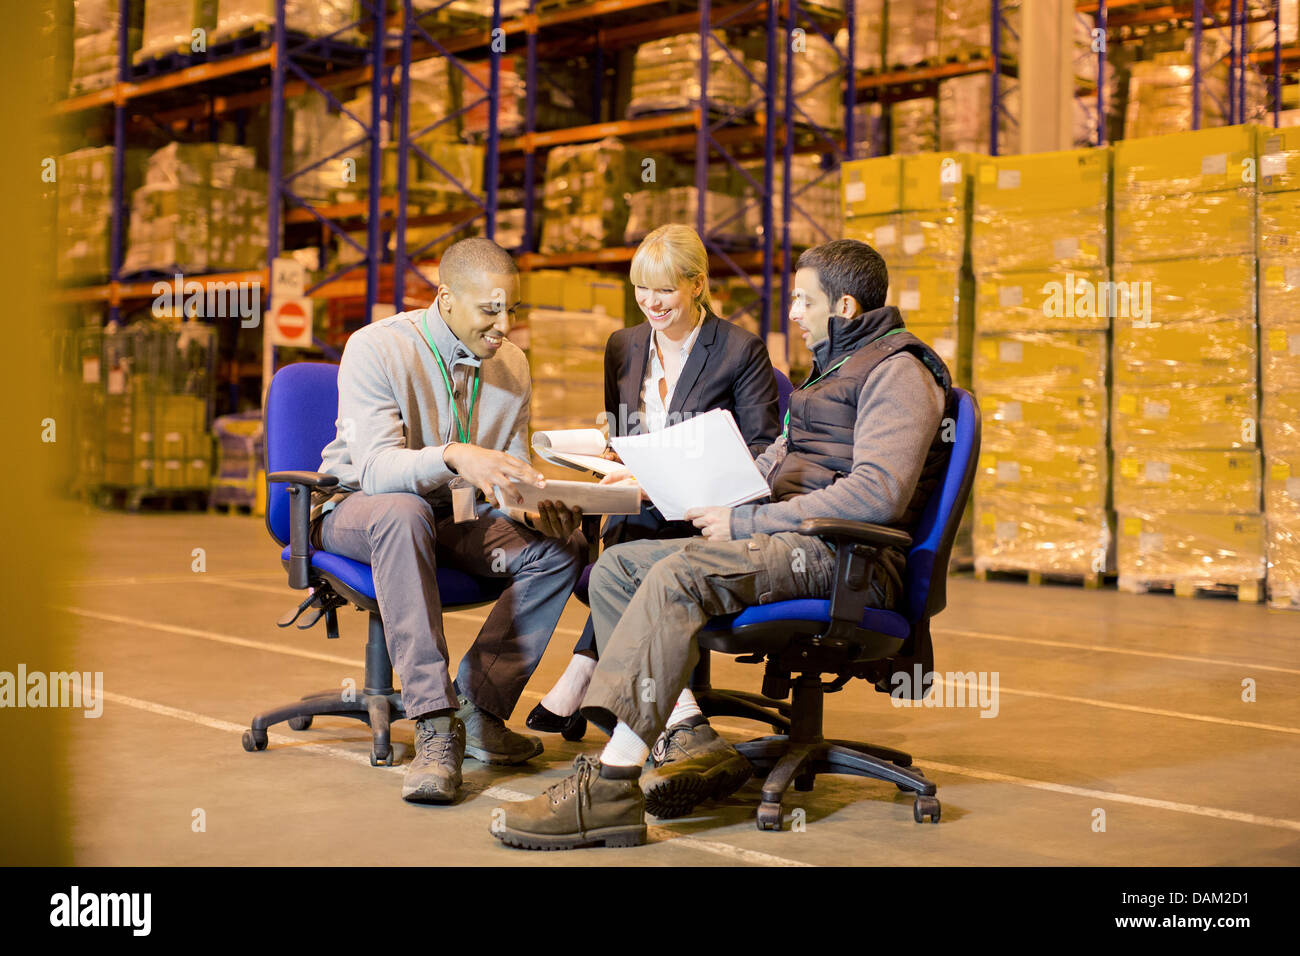 Business people talking in warehouse - Stock Image